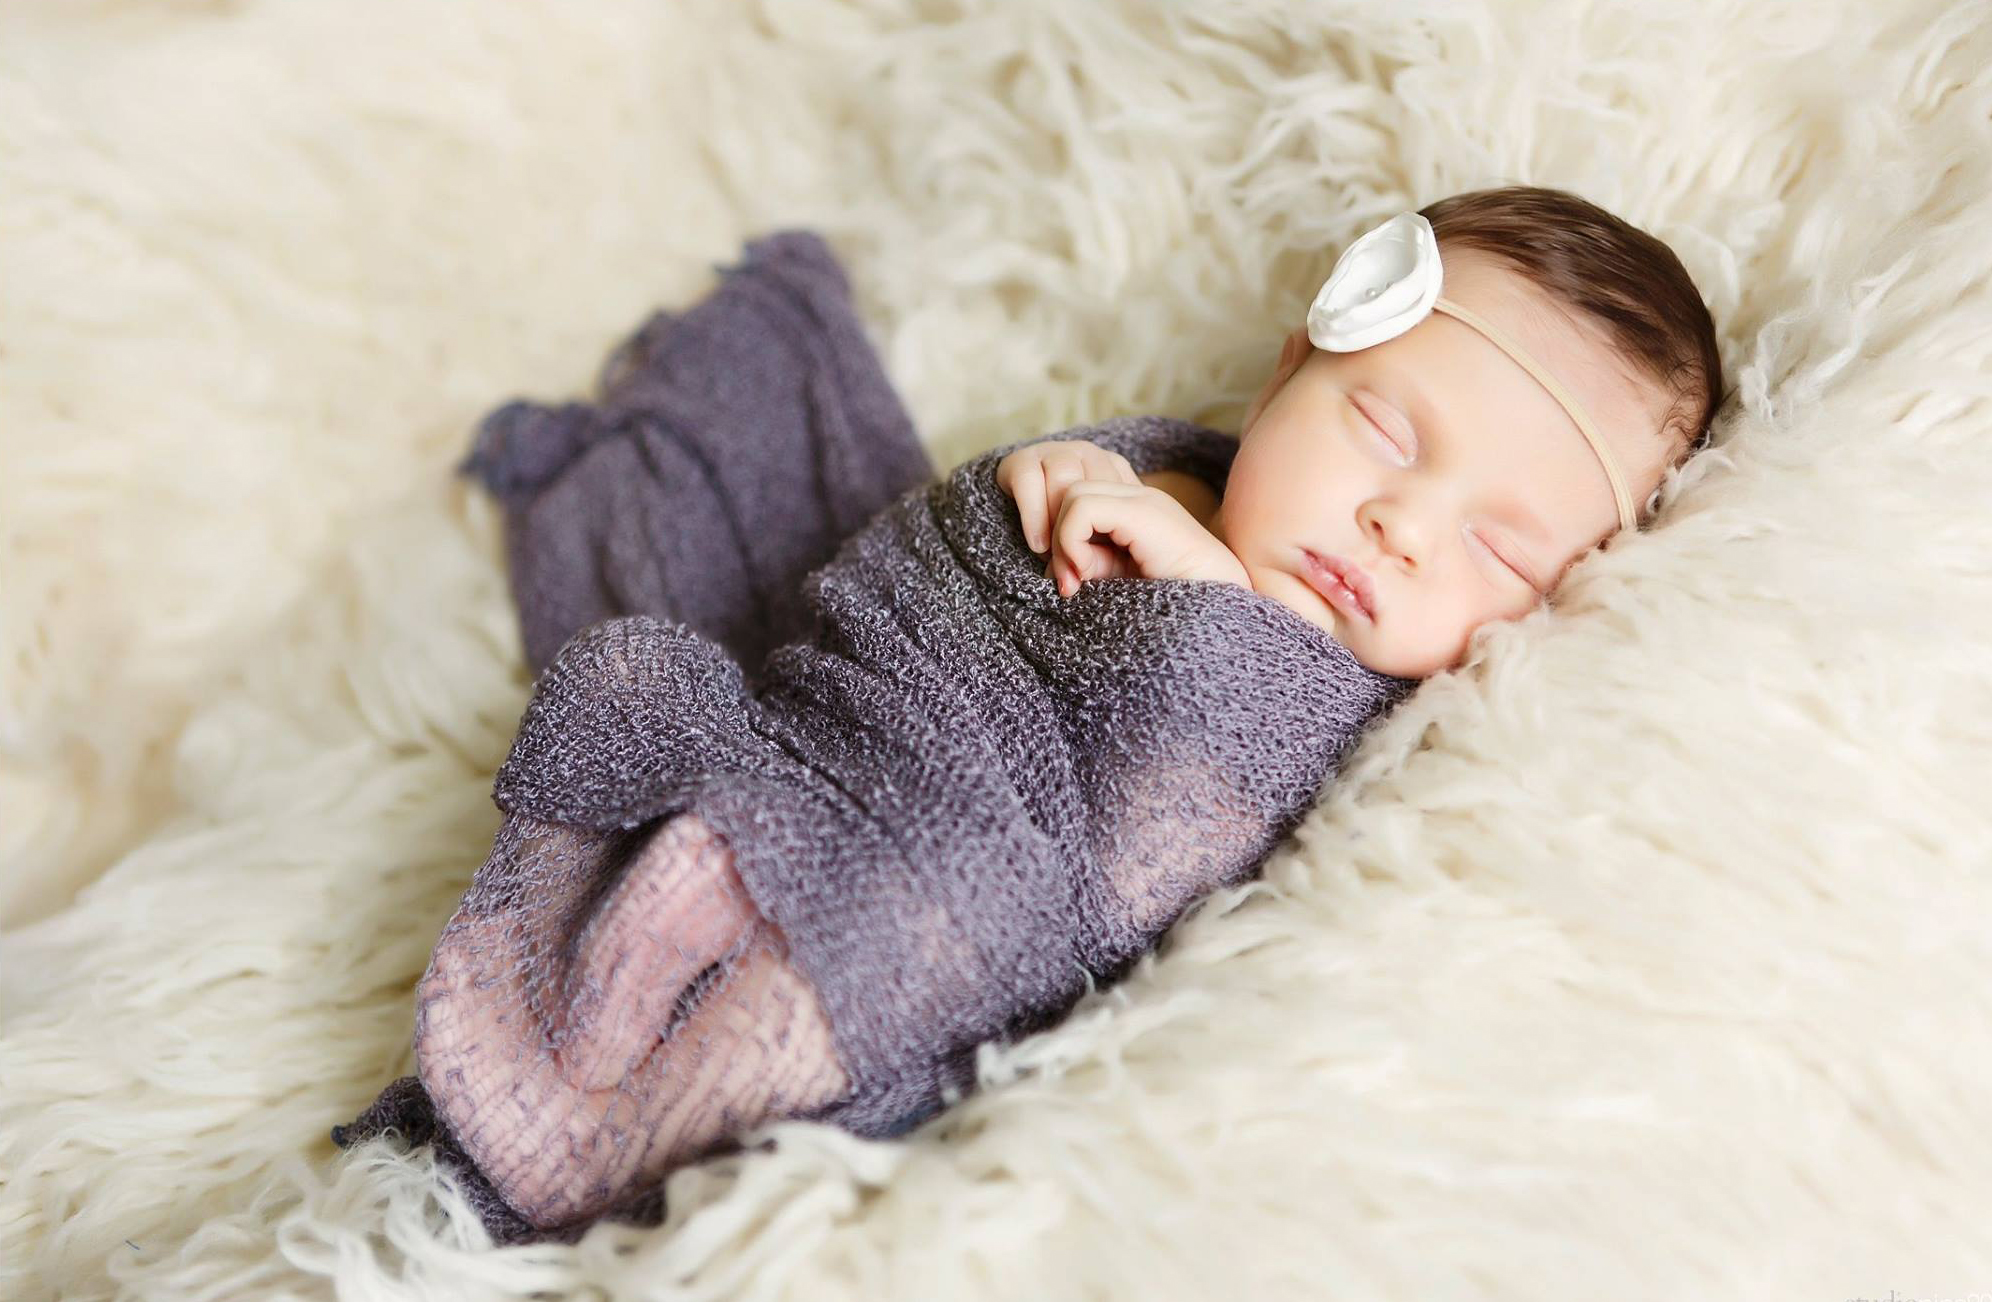 simple says it best - we have a no frills policy when it comes to newborn photography. we love in-home sessions and natural styling.